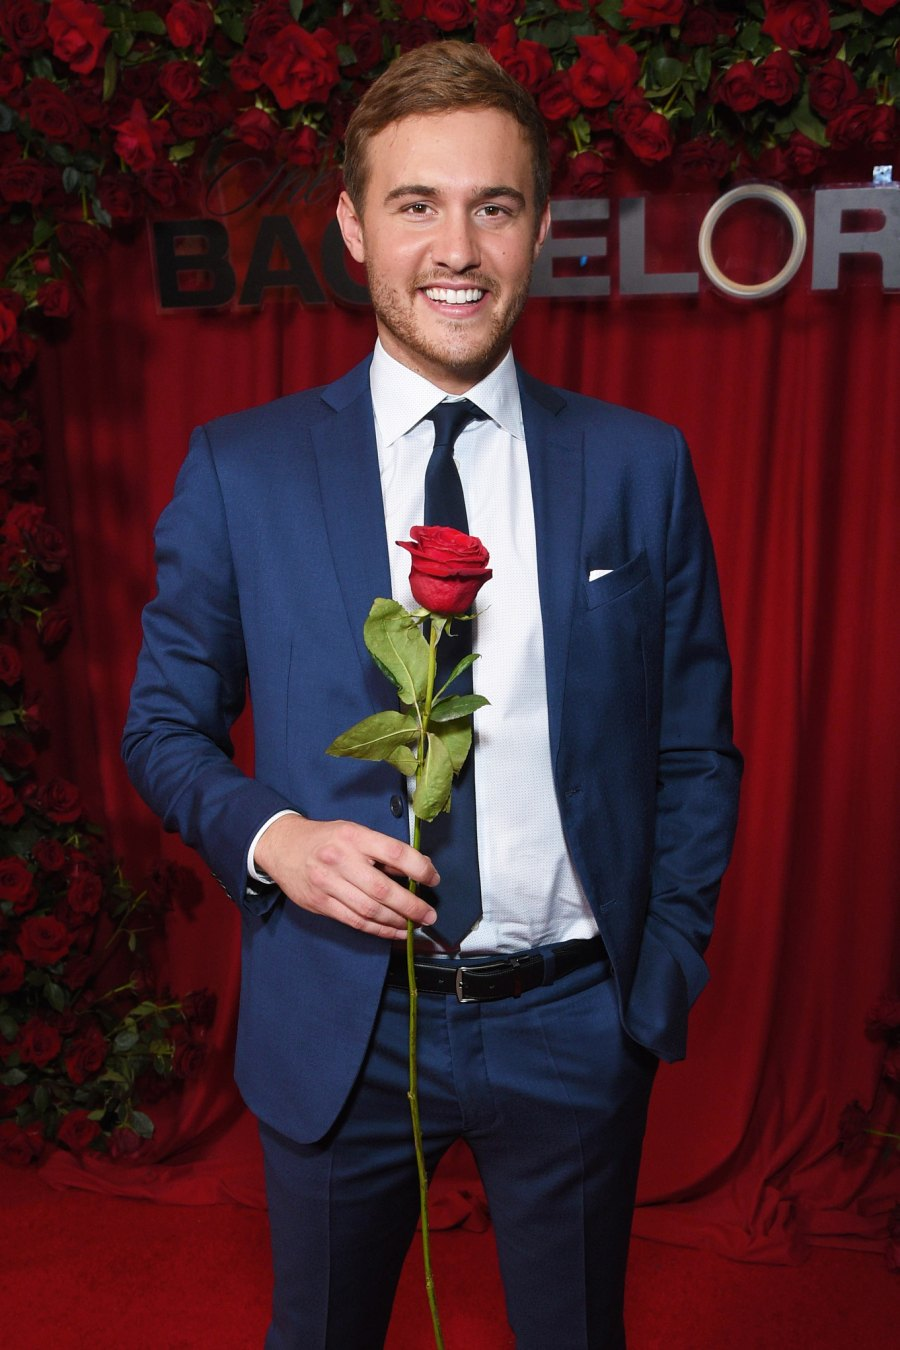 Peter Weber Says He Wouldn't Re-Do His Season of 'The Bachelor'